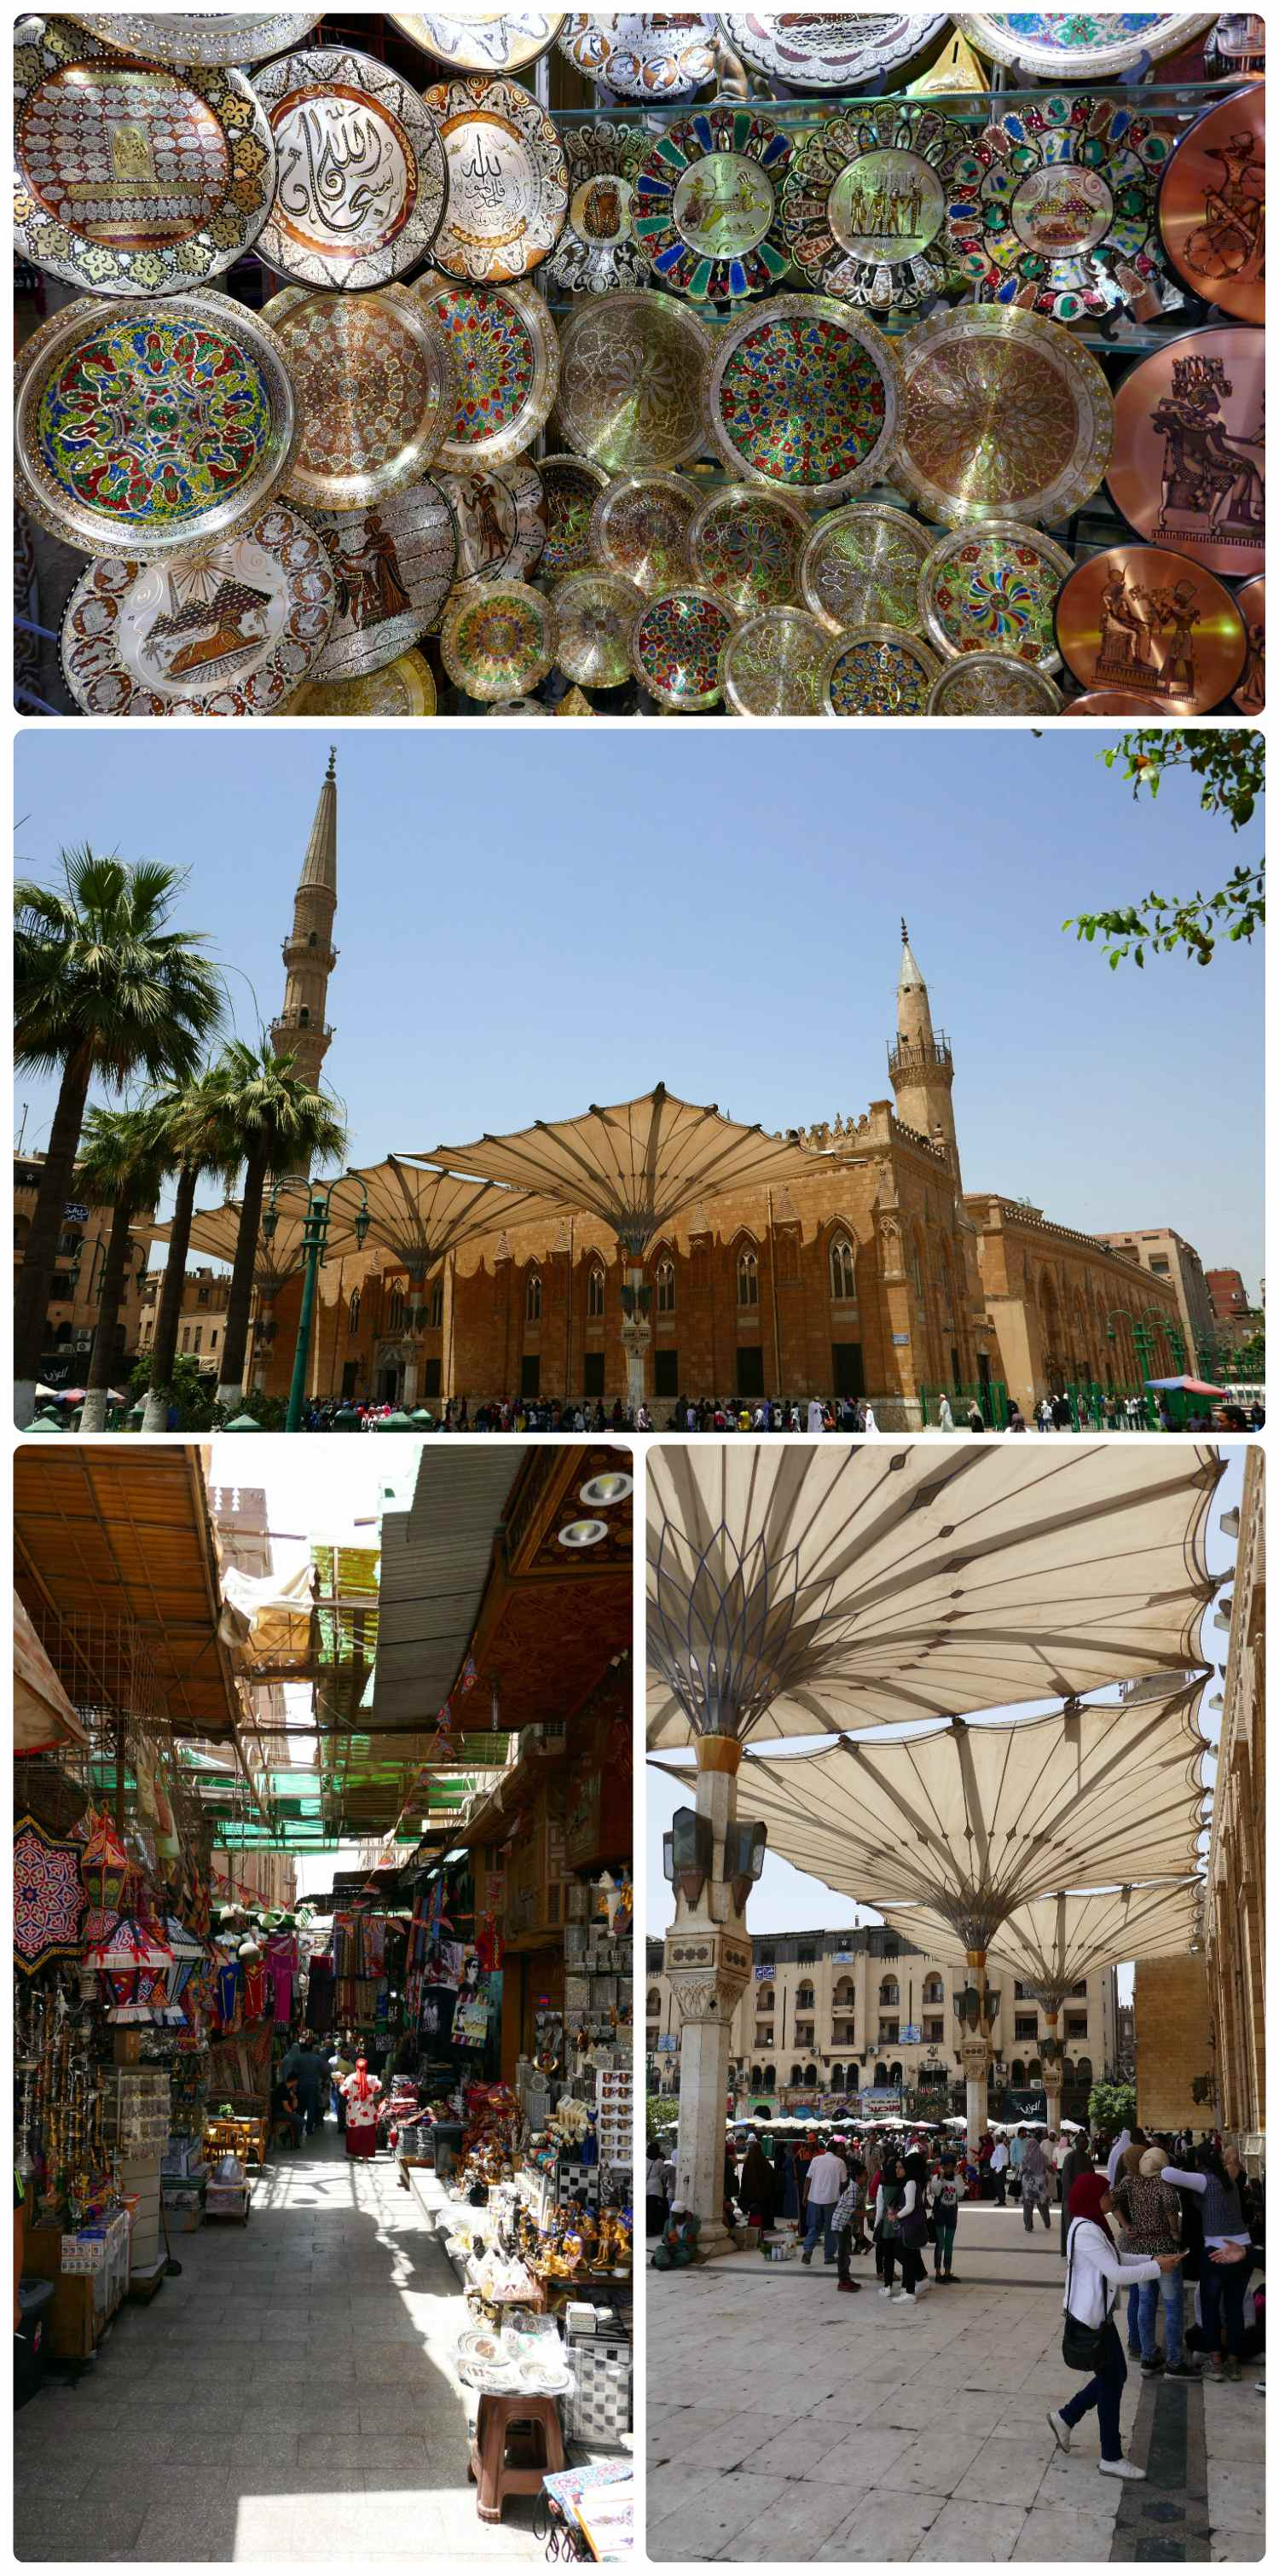 Top to bottom and left to right: Inside a shop at the Khan el-Khalili Bazaar, to the side of the bazaar is the Al-Hussein Mosque, a view walking into the Khan el-Khalili Bazaar, the covered courtyard next to the mosque - the entrance to the bazaar is on the far side and to the right in the photograph.